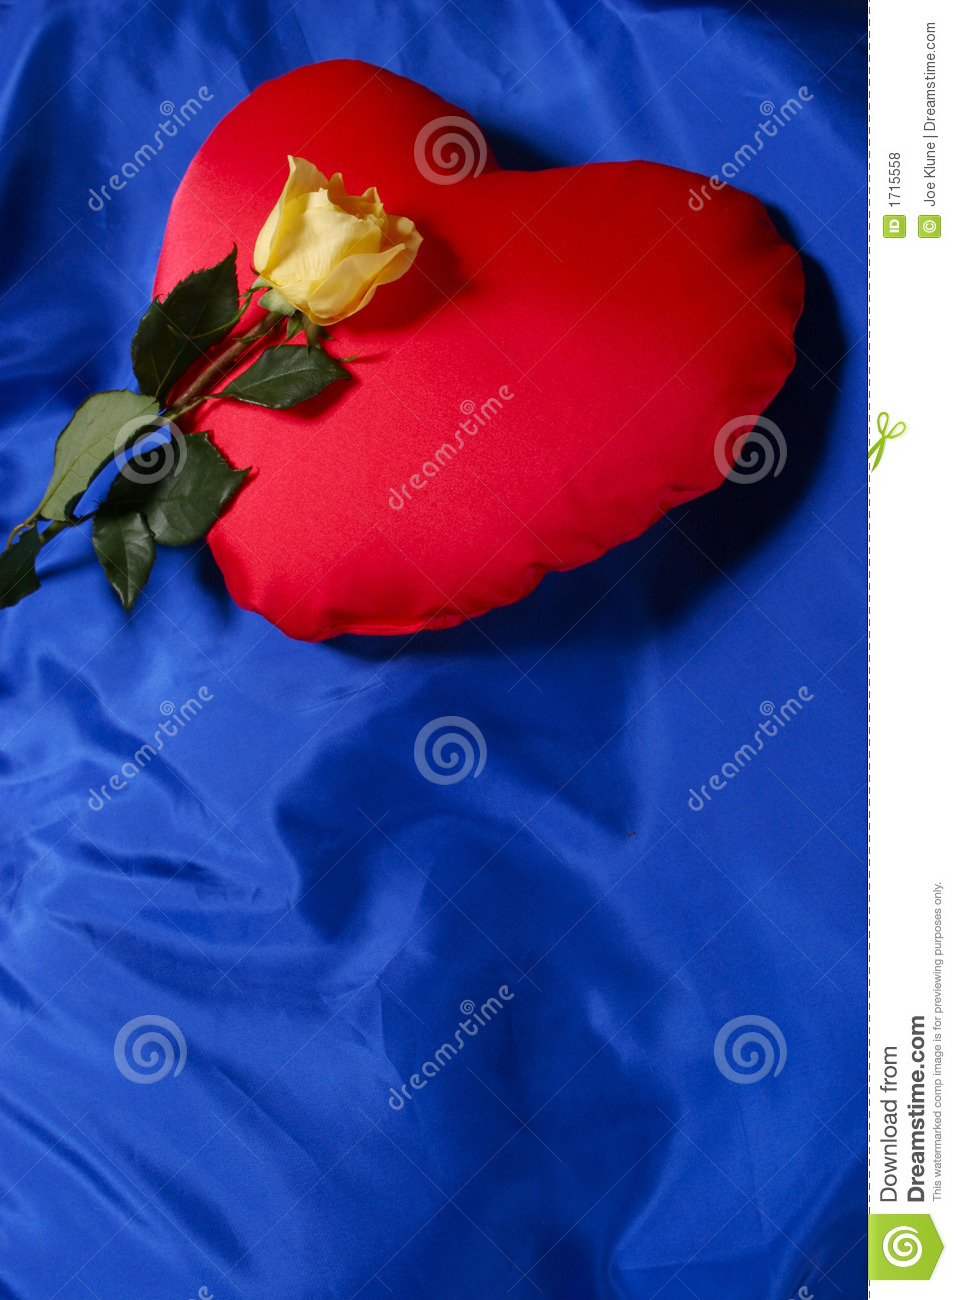 red heart shaped pillow stock photo image of flower commitment 1715558